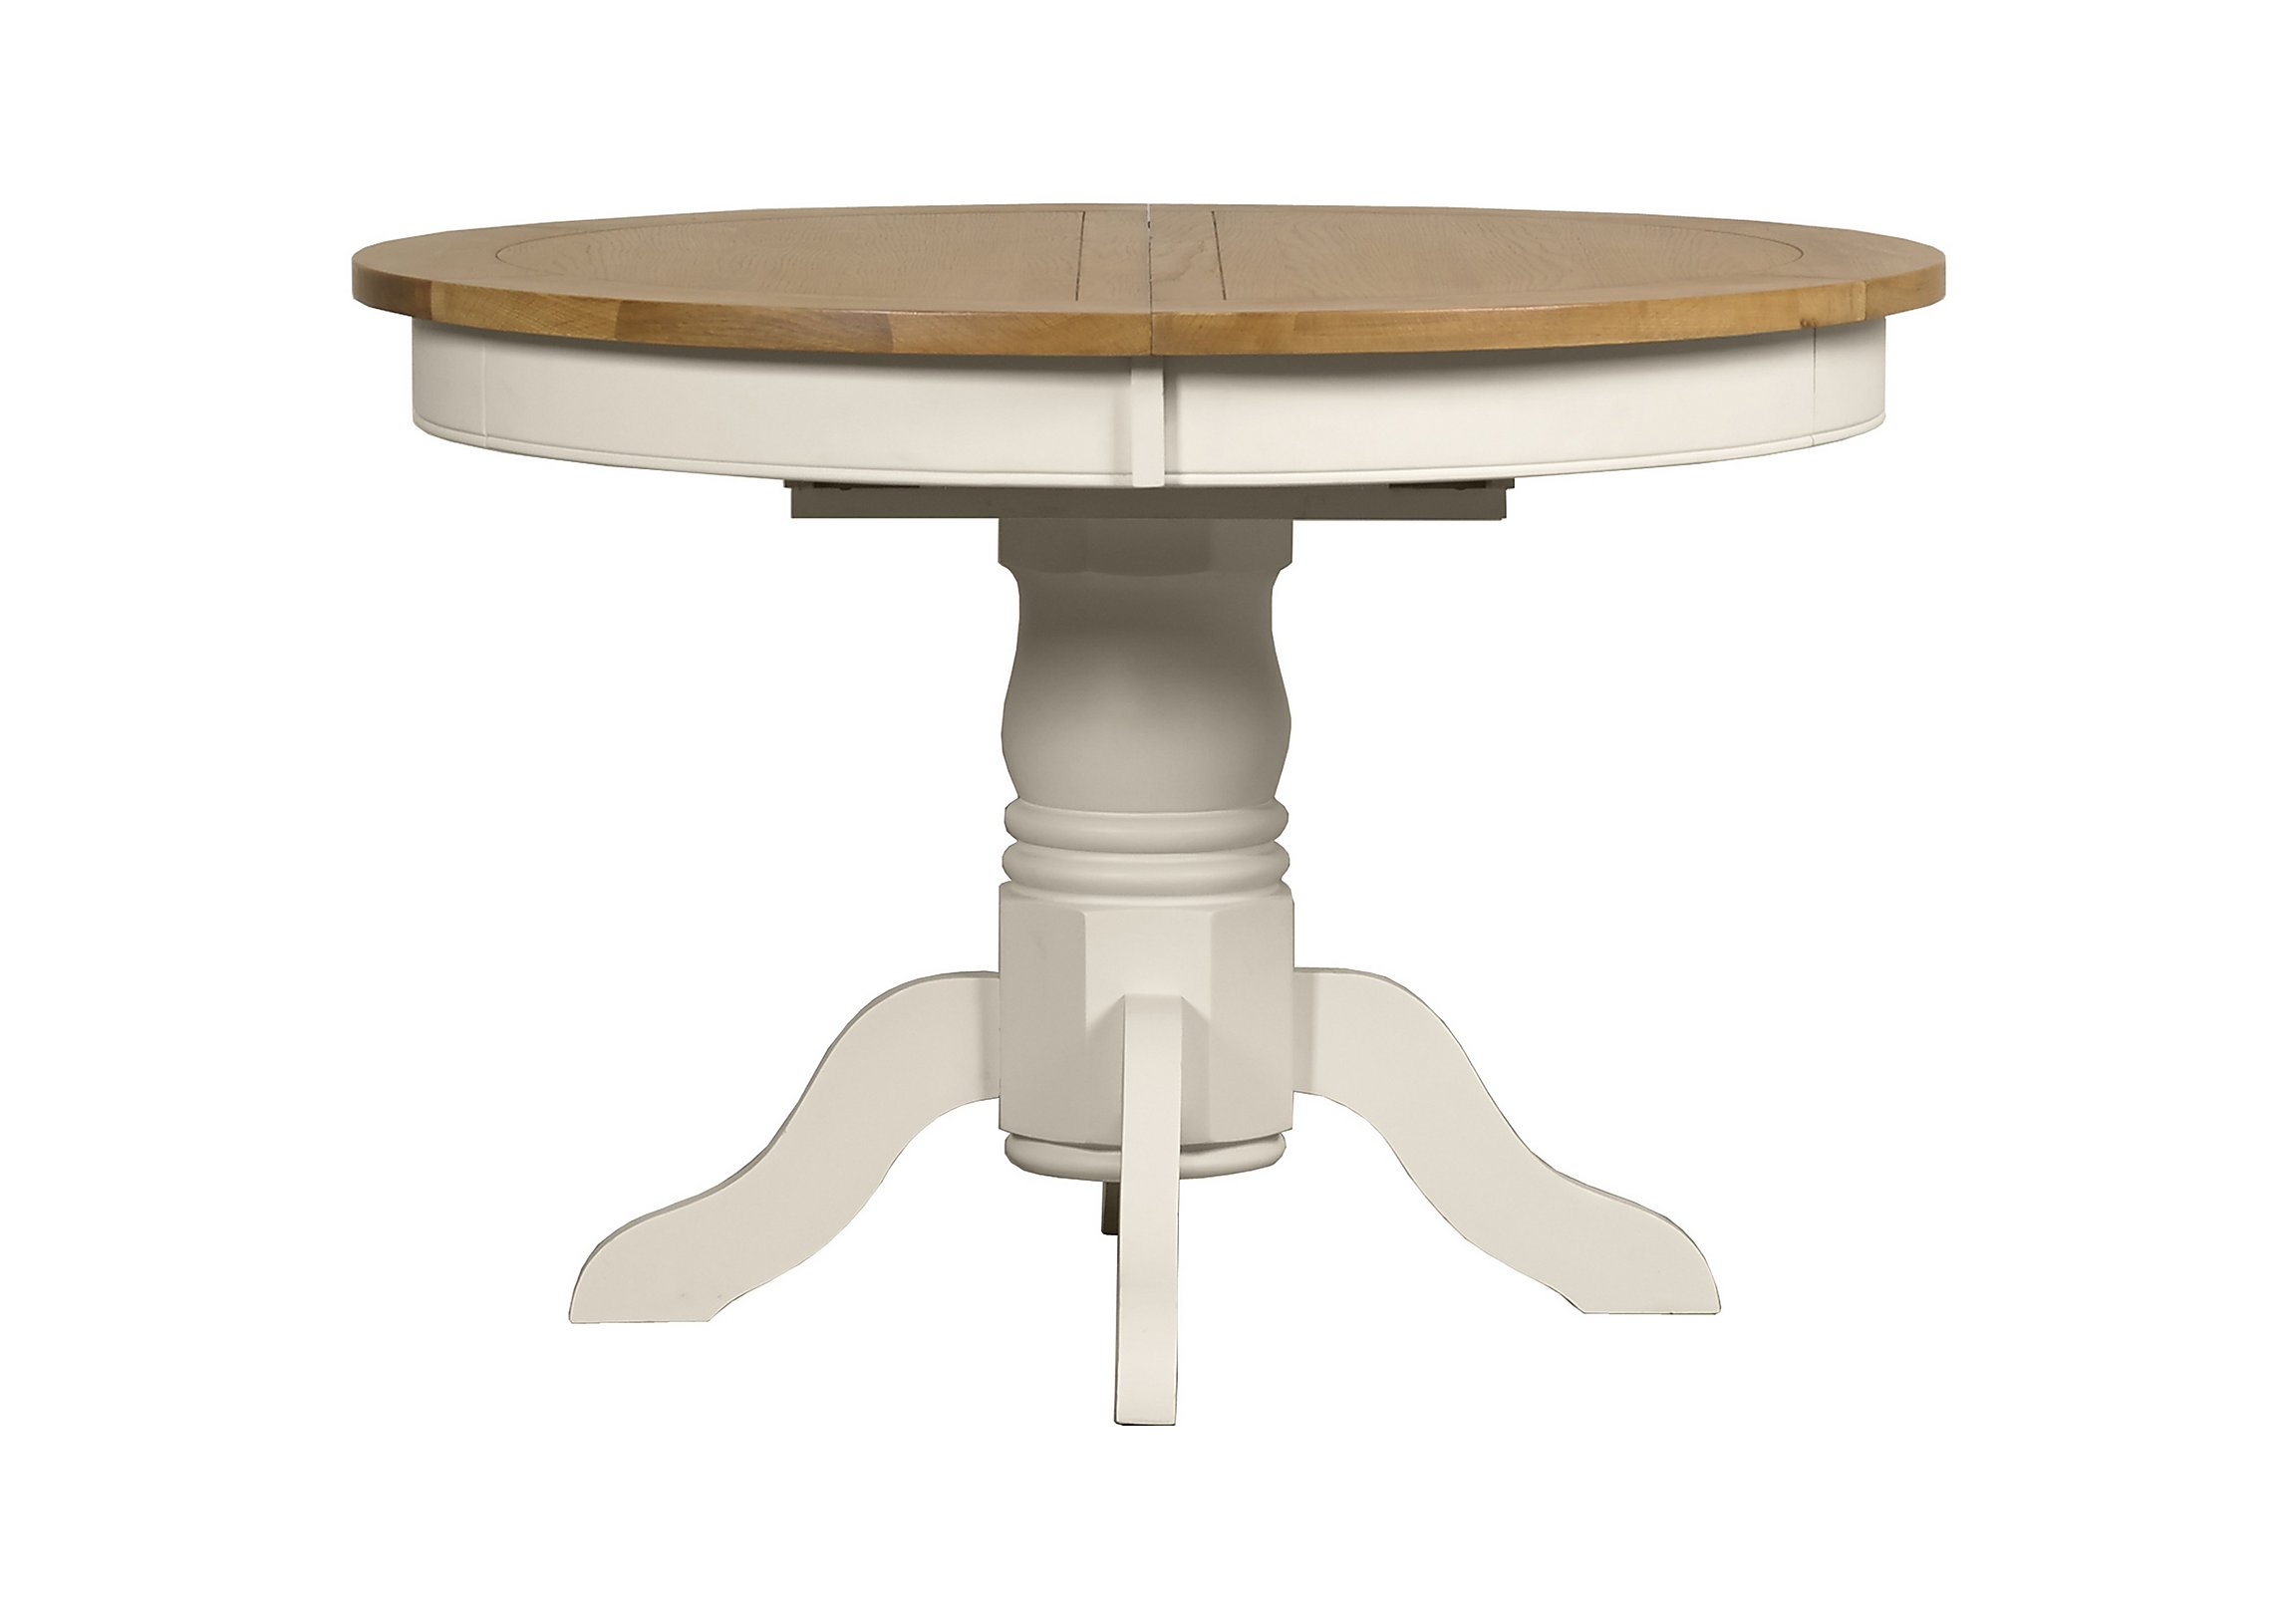 arles round extending dining table. arles round extending dining table  furniture village